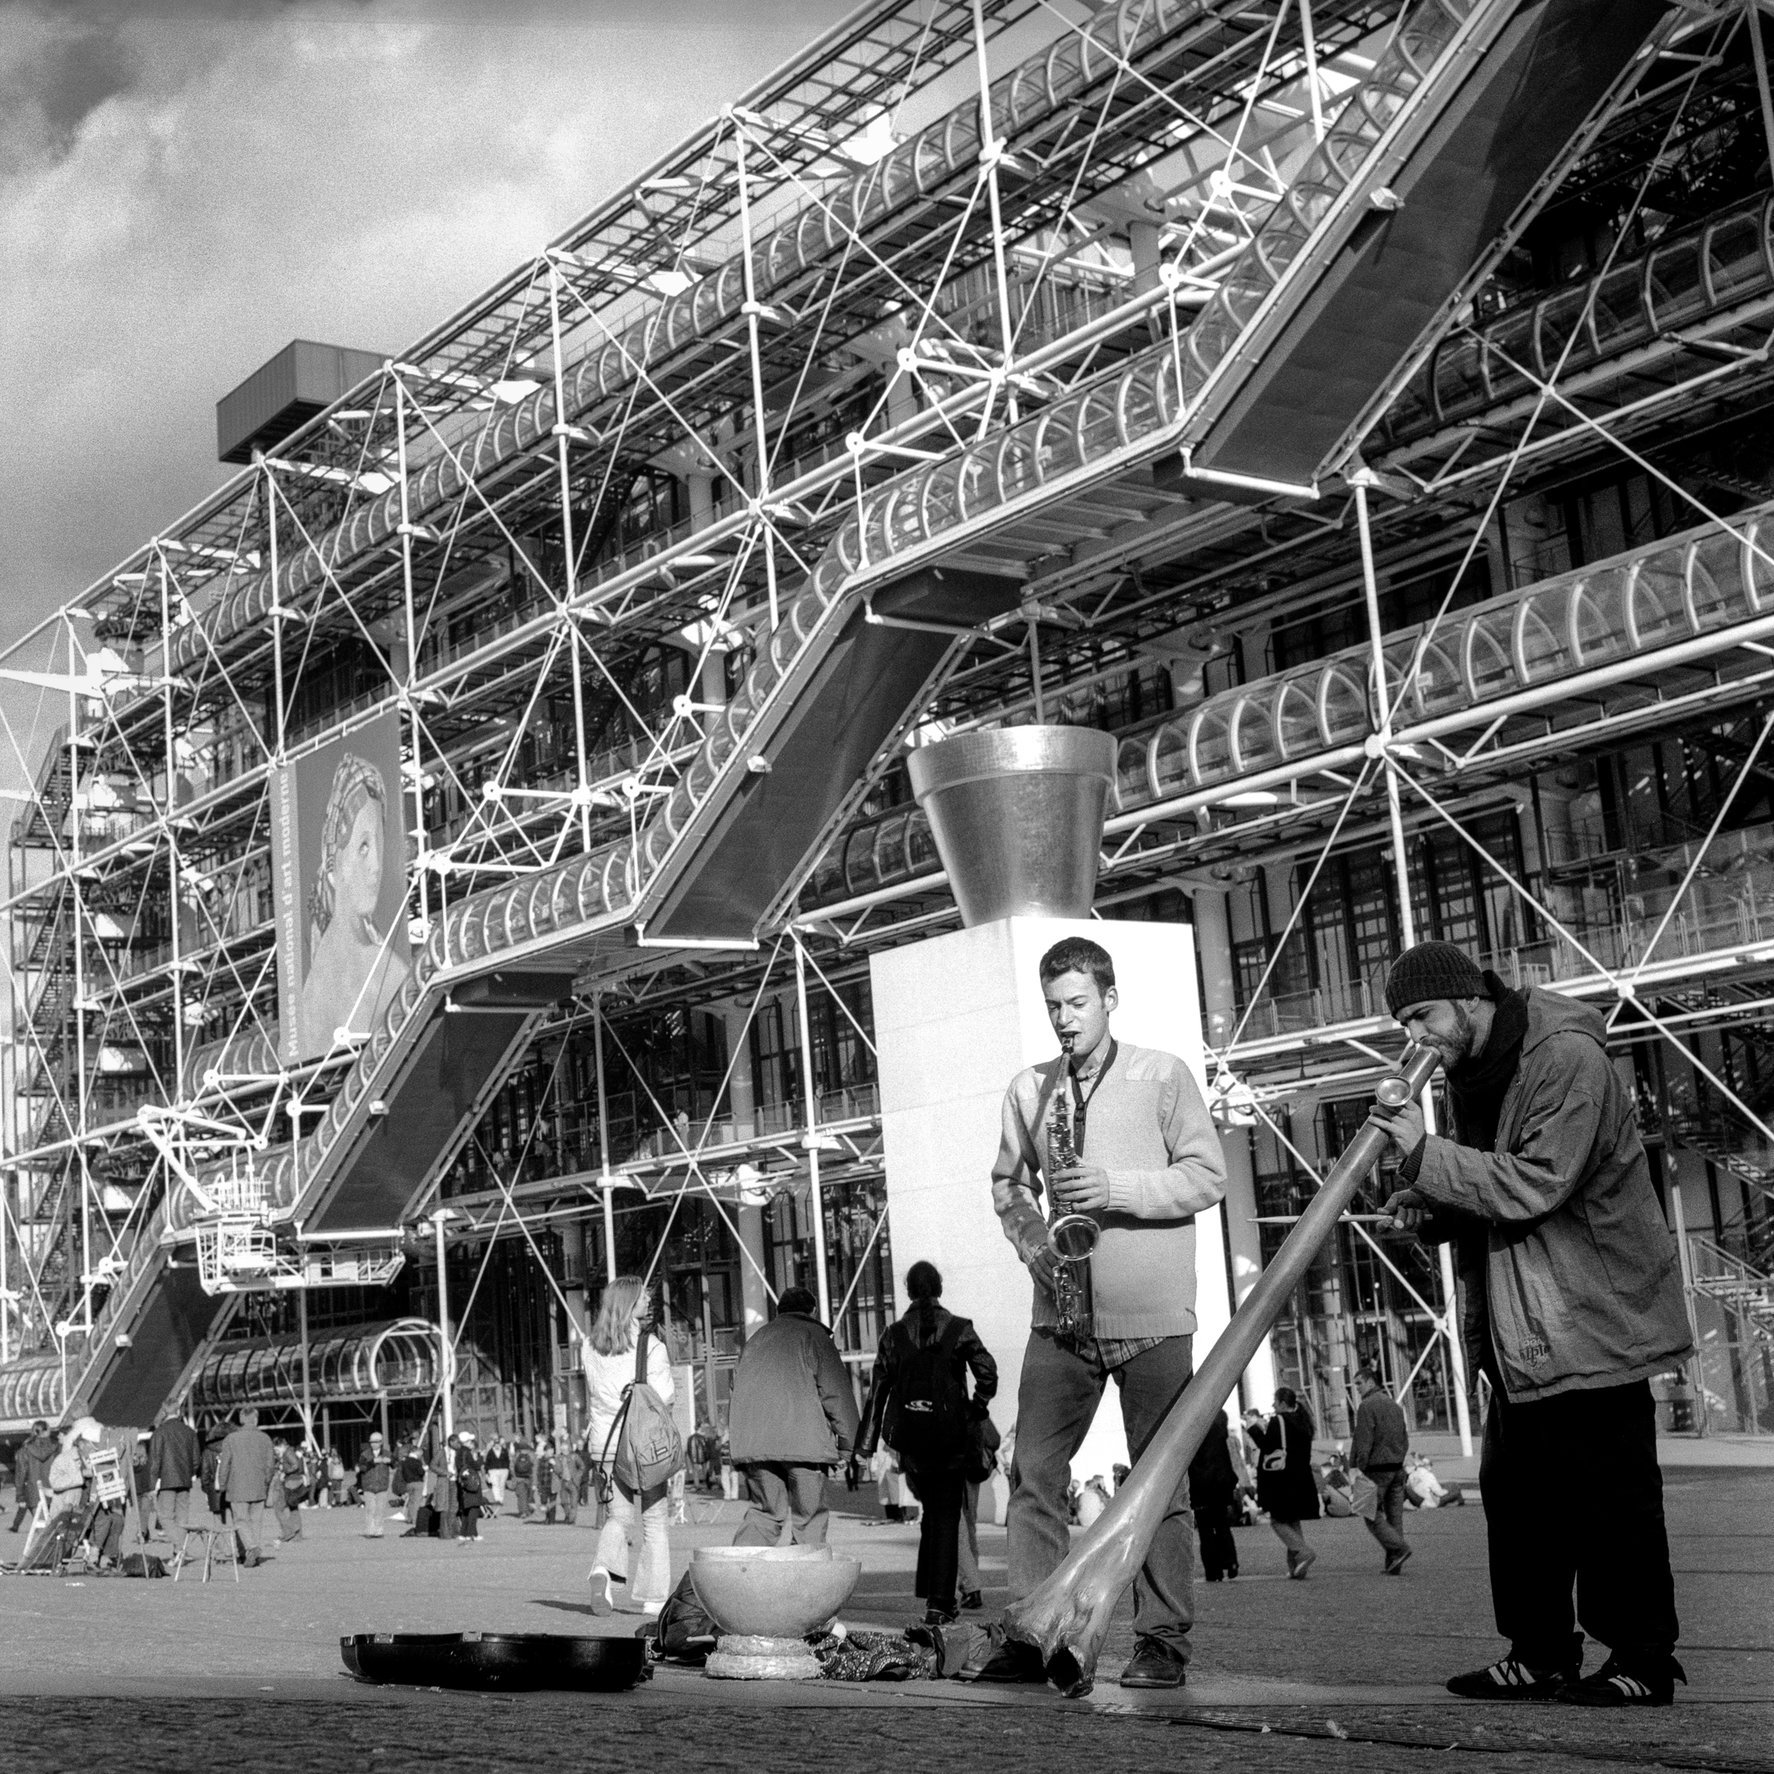 POMPIDOU CENTER, PARIS